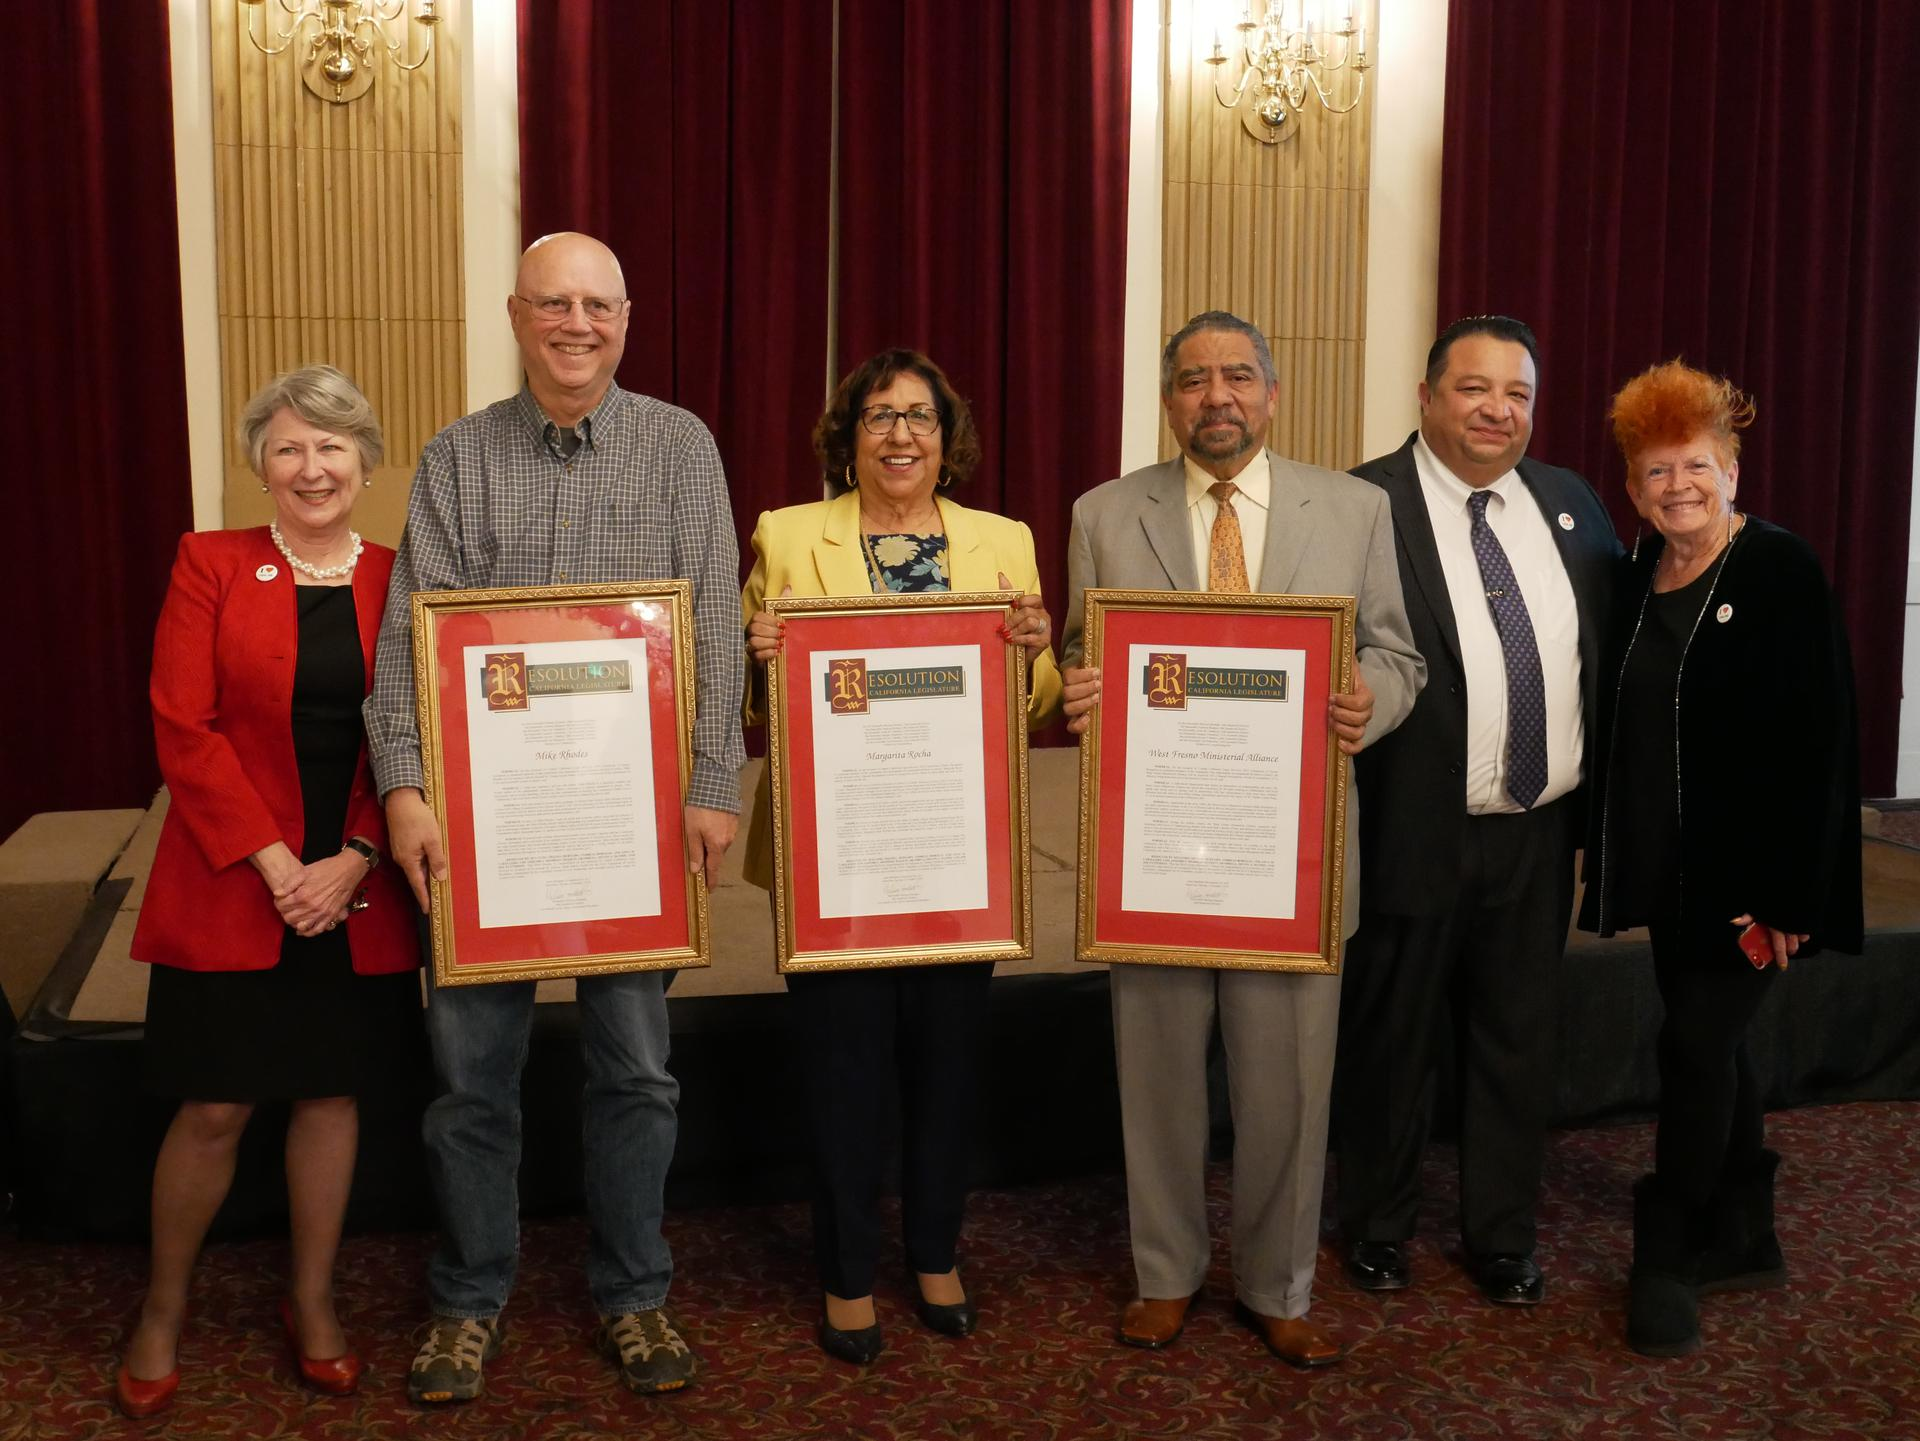 Champions of Justice 2019 Honorees